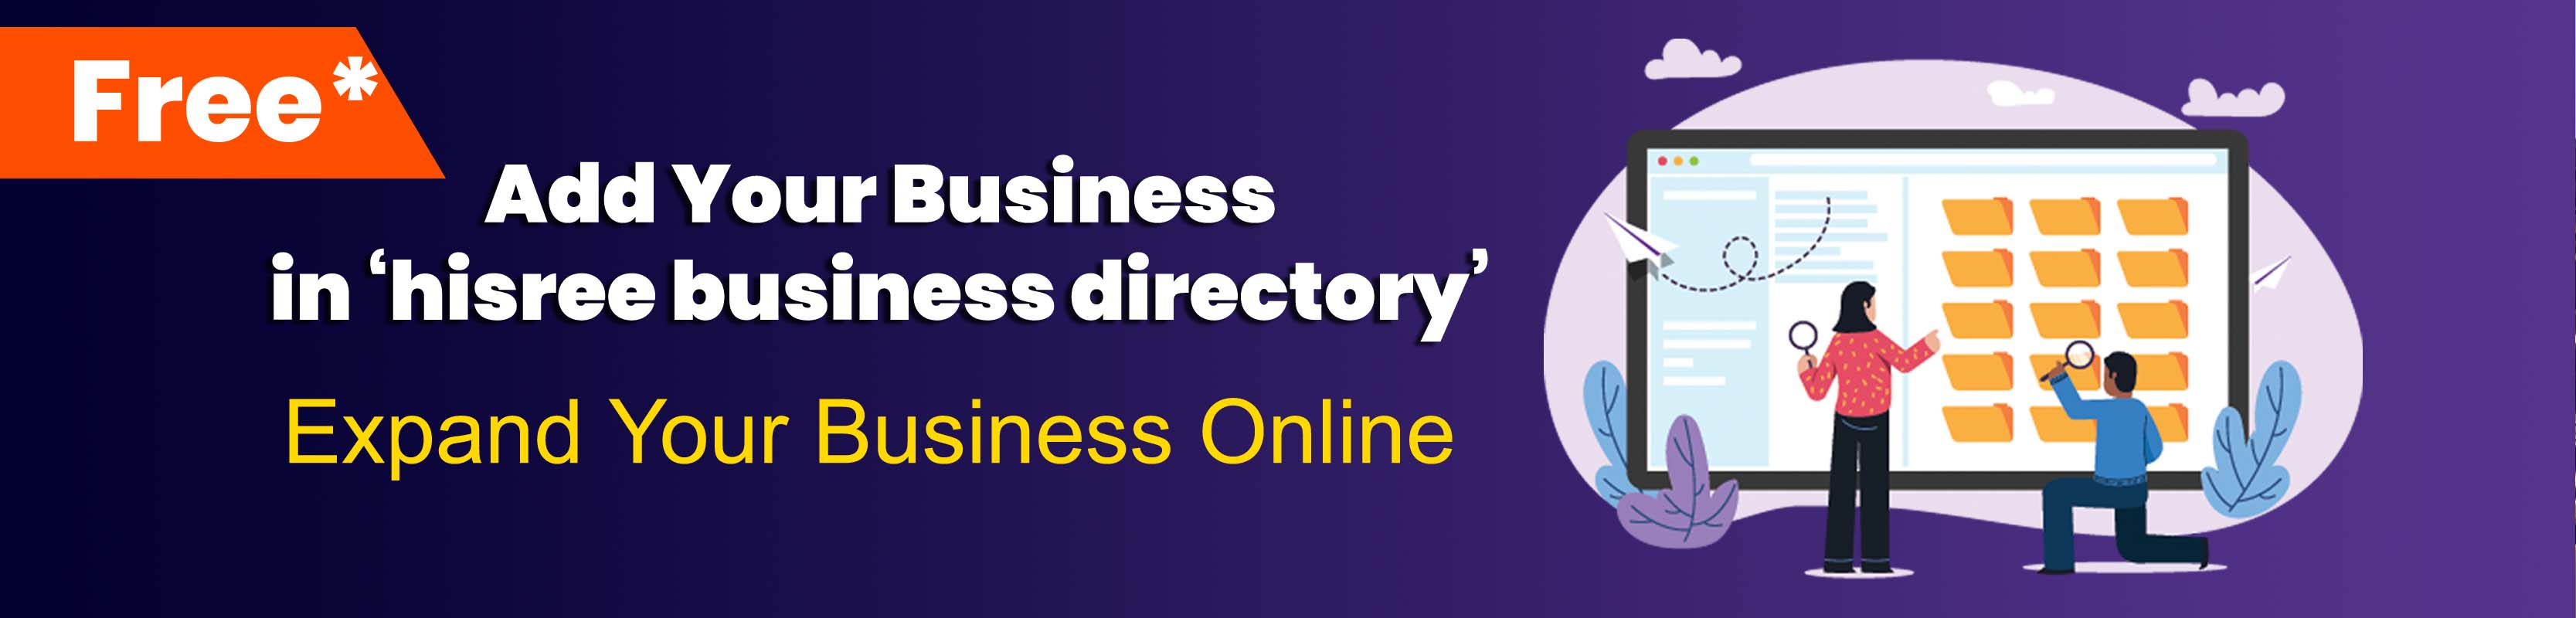 hisree business directory